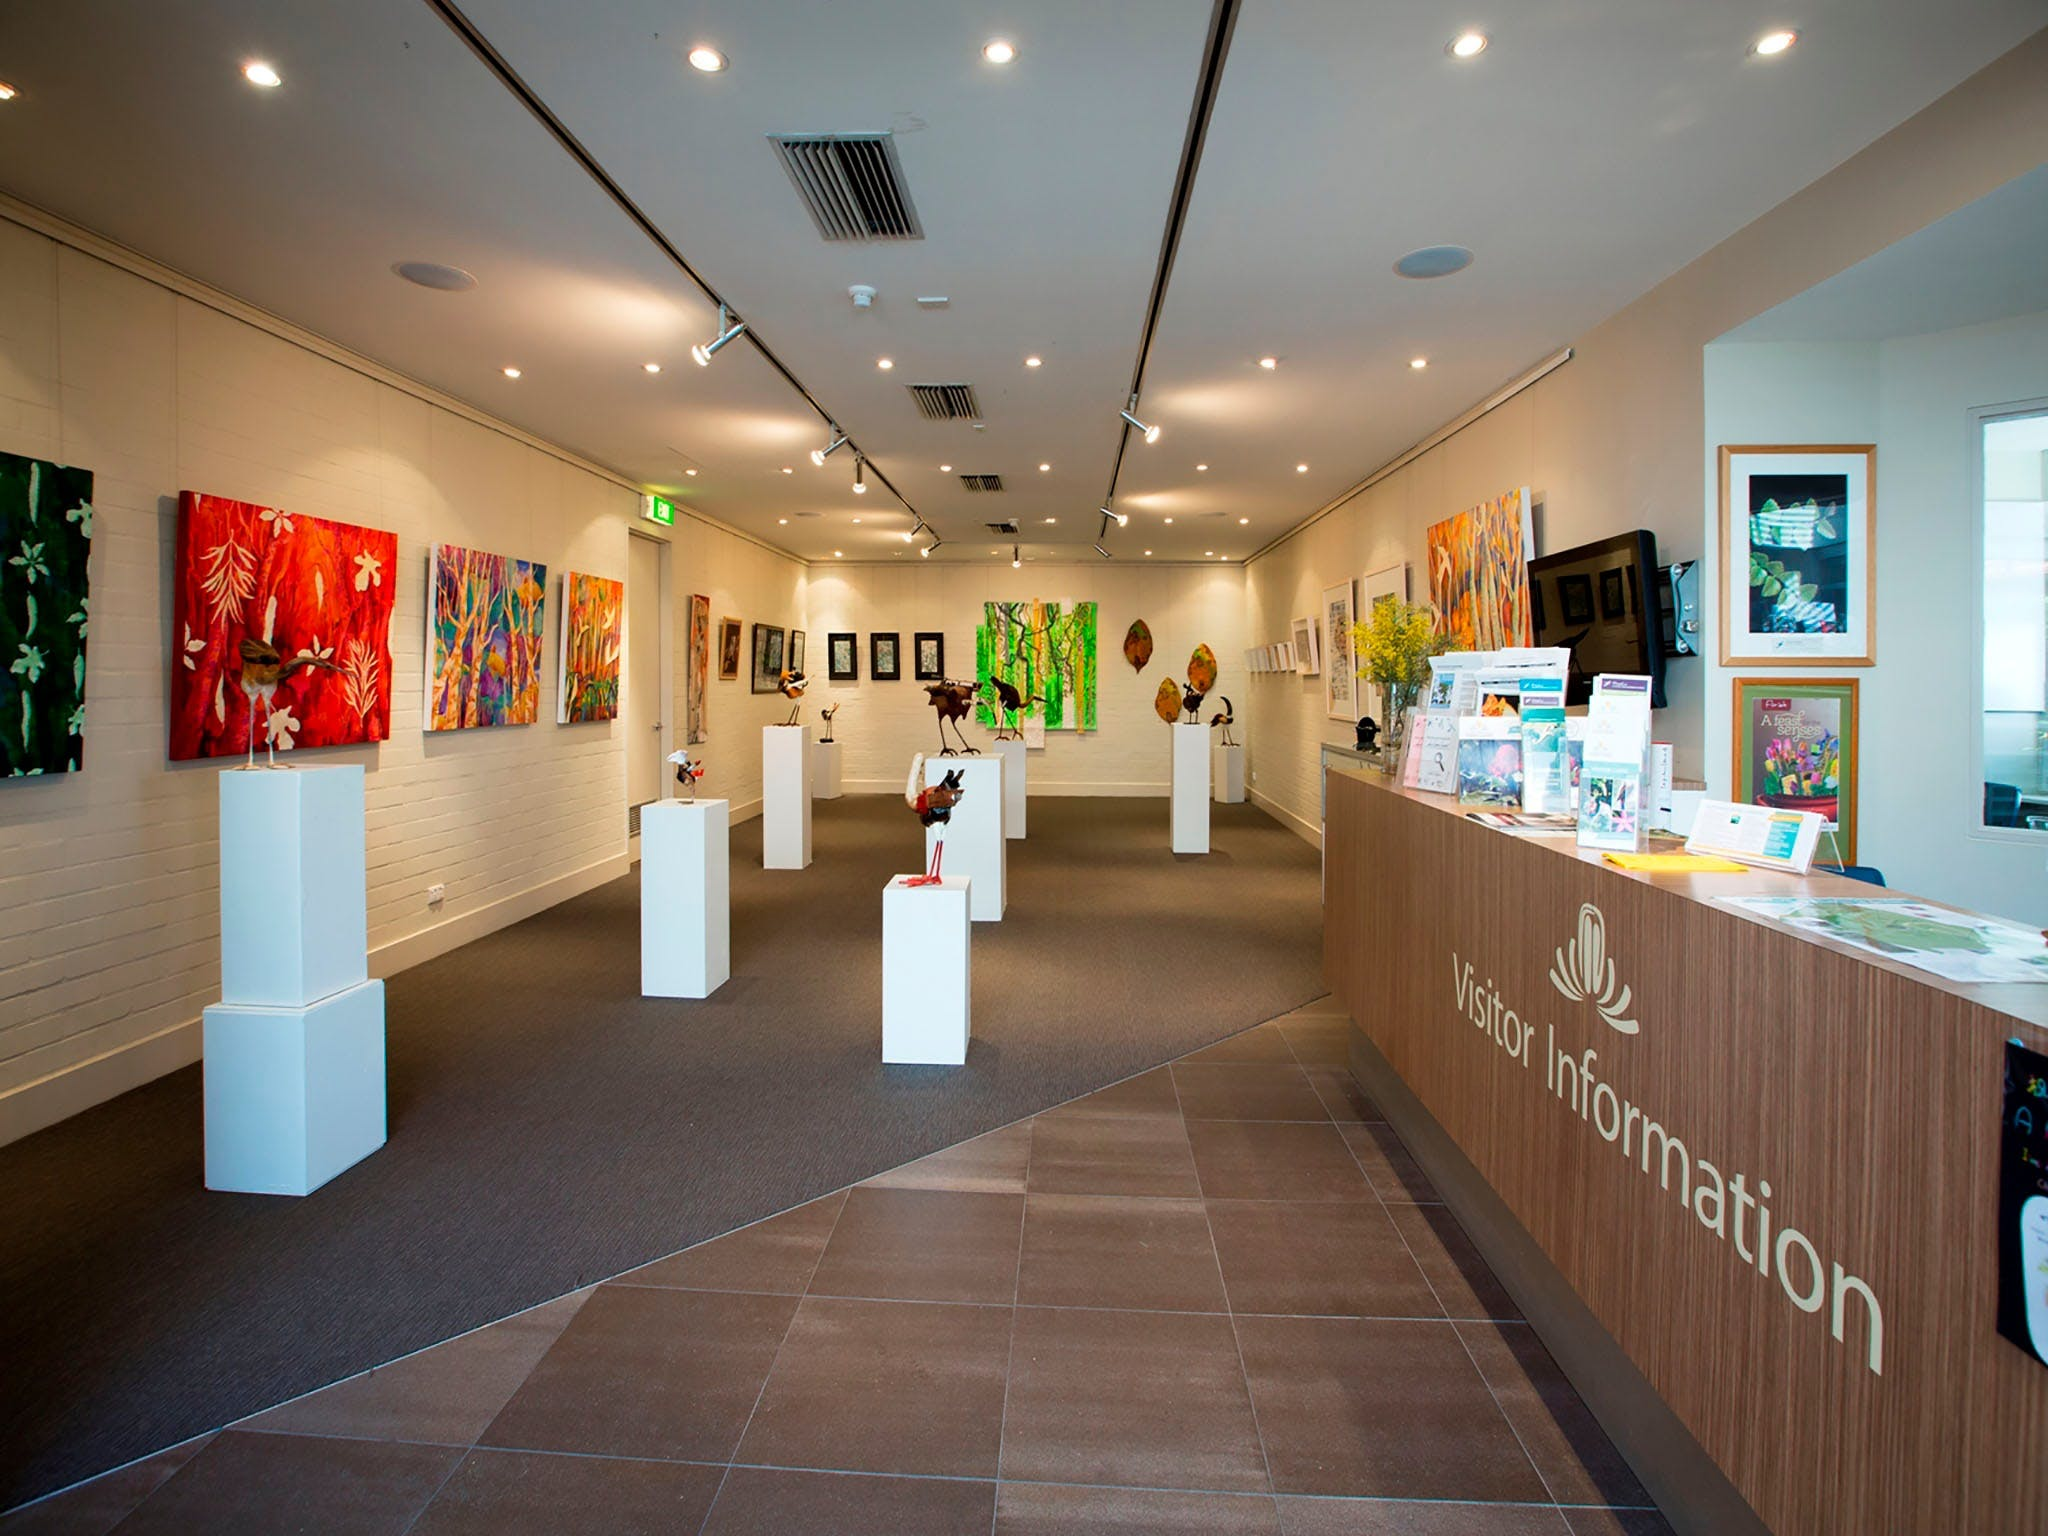 Australian National Botanic Gardens Visitor Centre Gallery - Accommodation Kalgoorlie